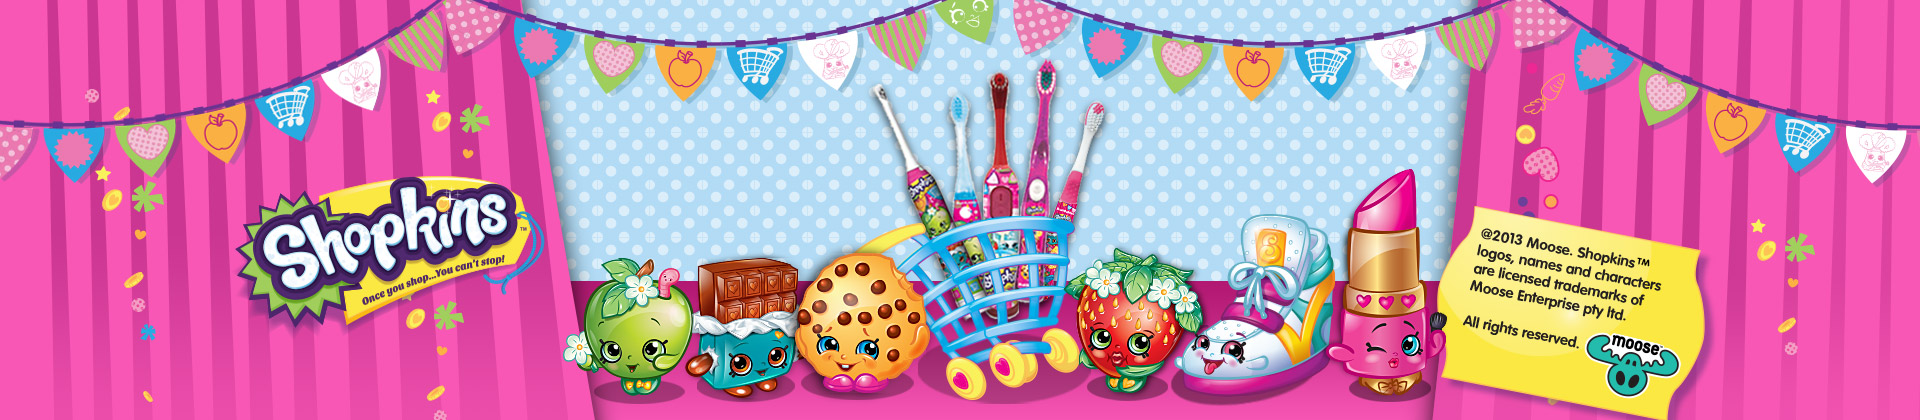 Shopkins Toys From Moose